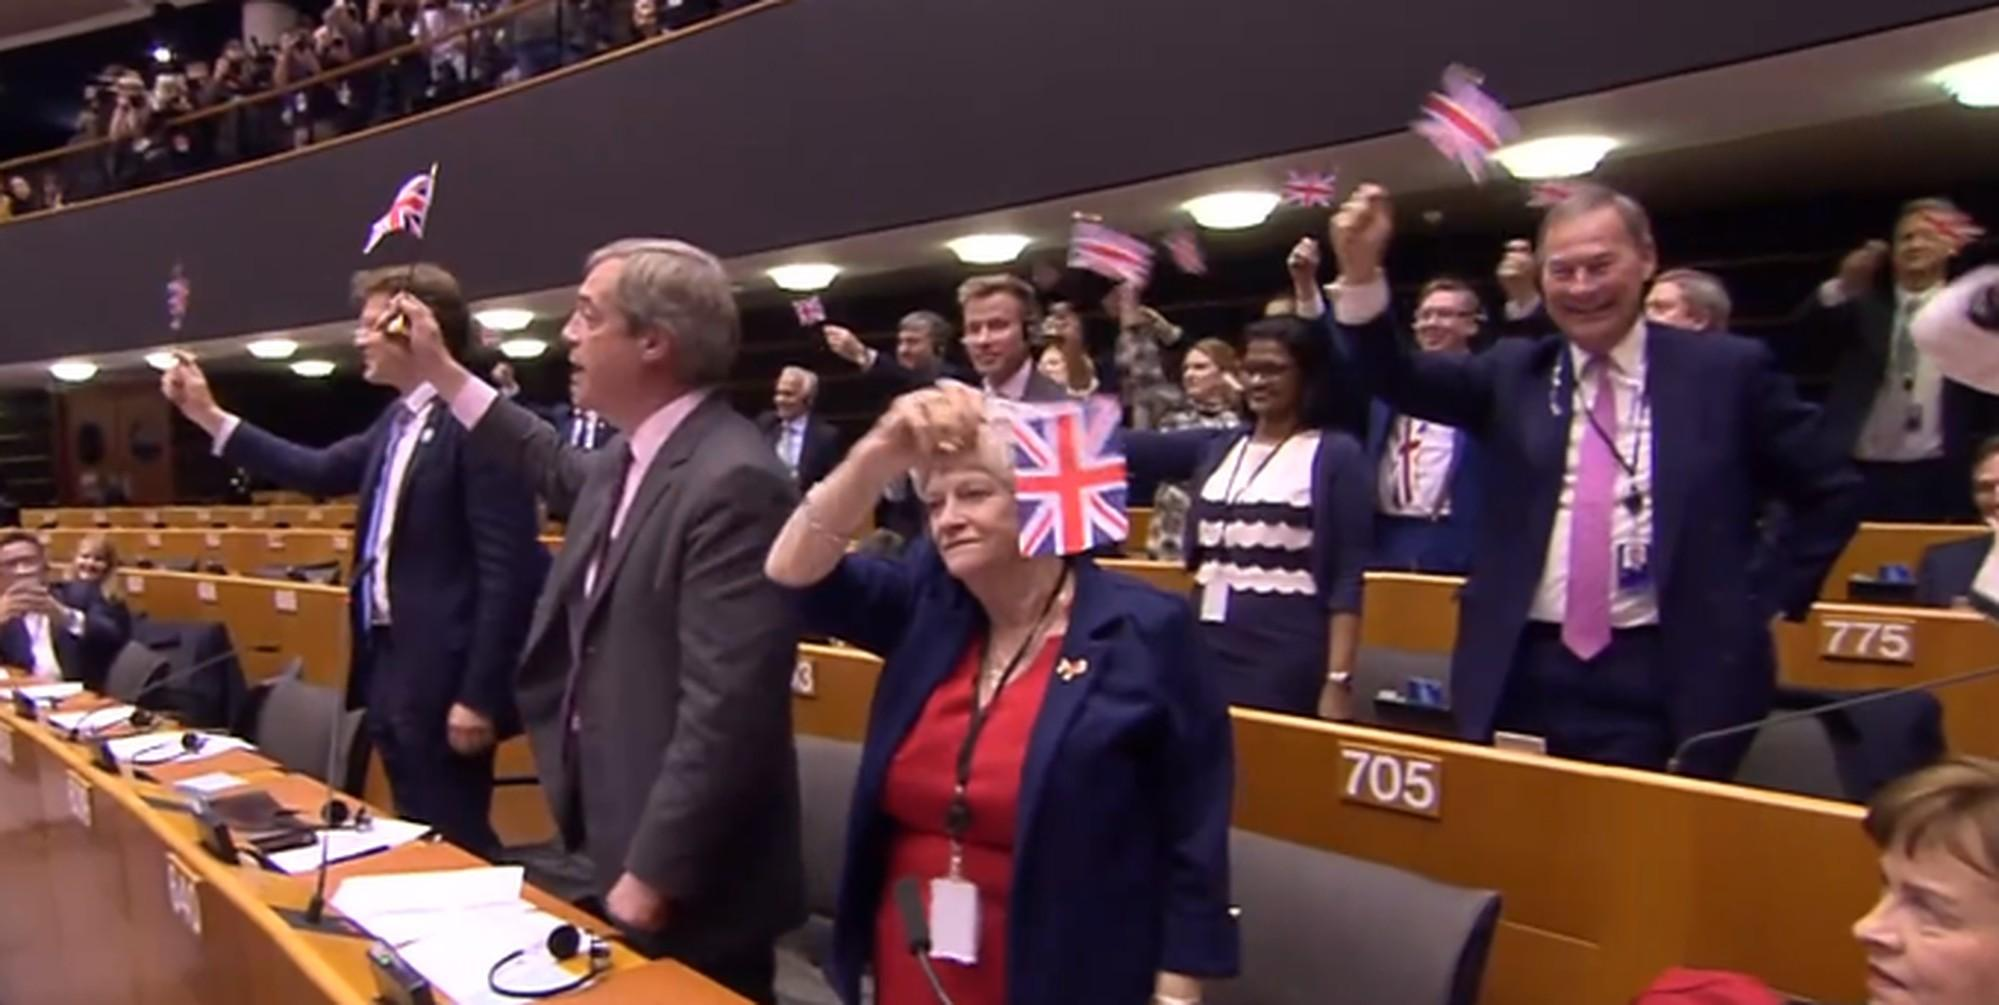 The Brexit Party waved tiny flags during Nigel Farage's final EU par…